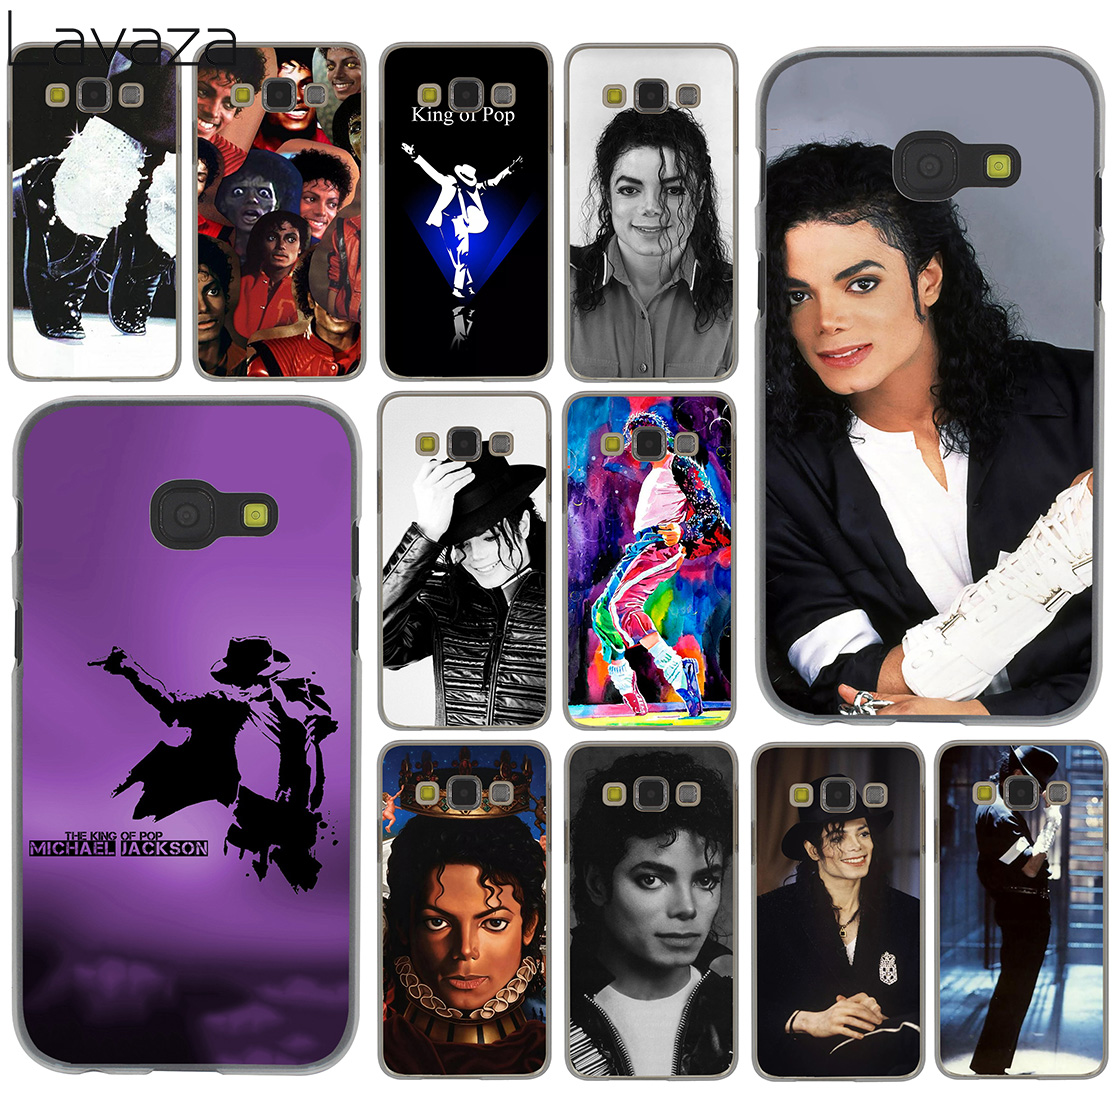 US $1 94 24% OFF|Lavaza Michael jackson dance Music Case for Samsung Galaxy  A6 A8 Plus A7 A9 2018 A3 A5 2017 2016 2015 Note 9 8 Cover-in Half-wrapped